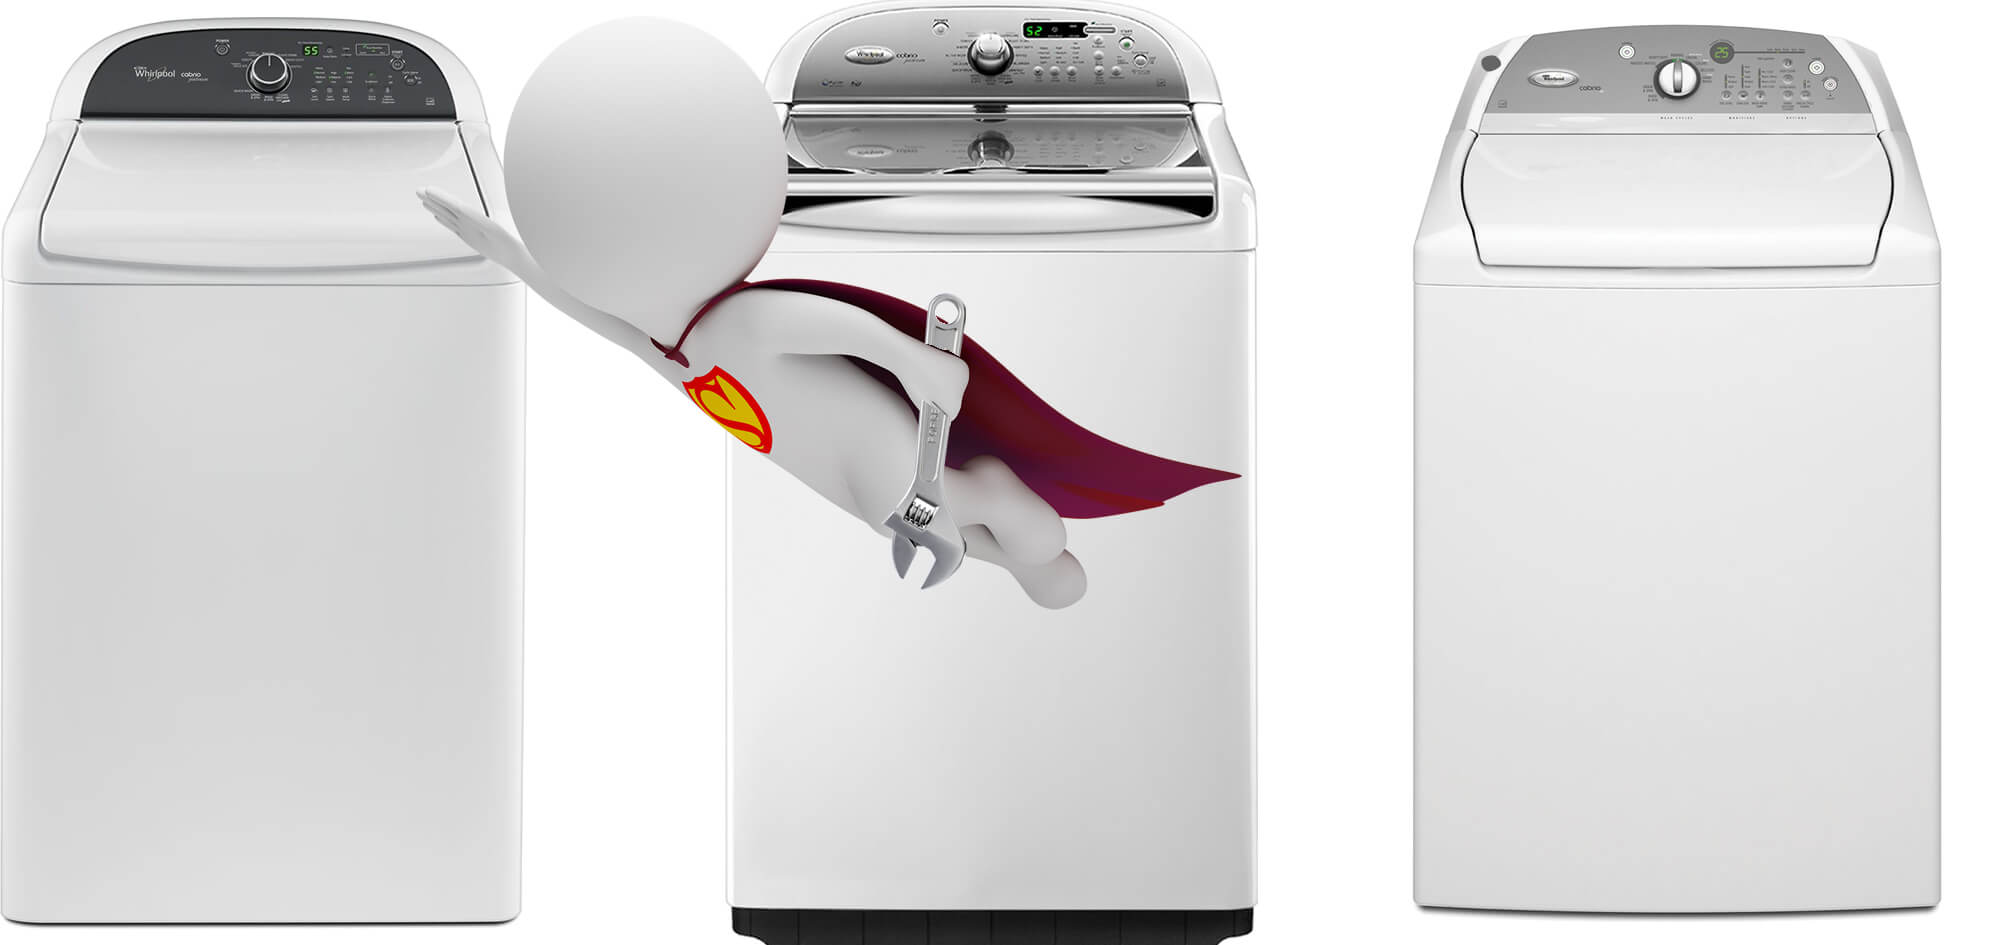 whirlpool cabrio washer repair guide applianceassistant com rh applianceassistant com whirlpool duet steam washer and dryer manual whirlpool duet washer and dryer troubleshooting